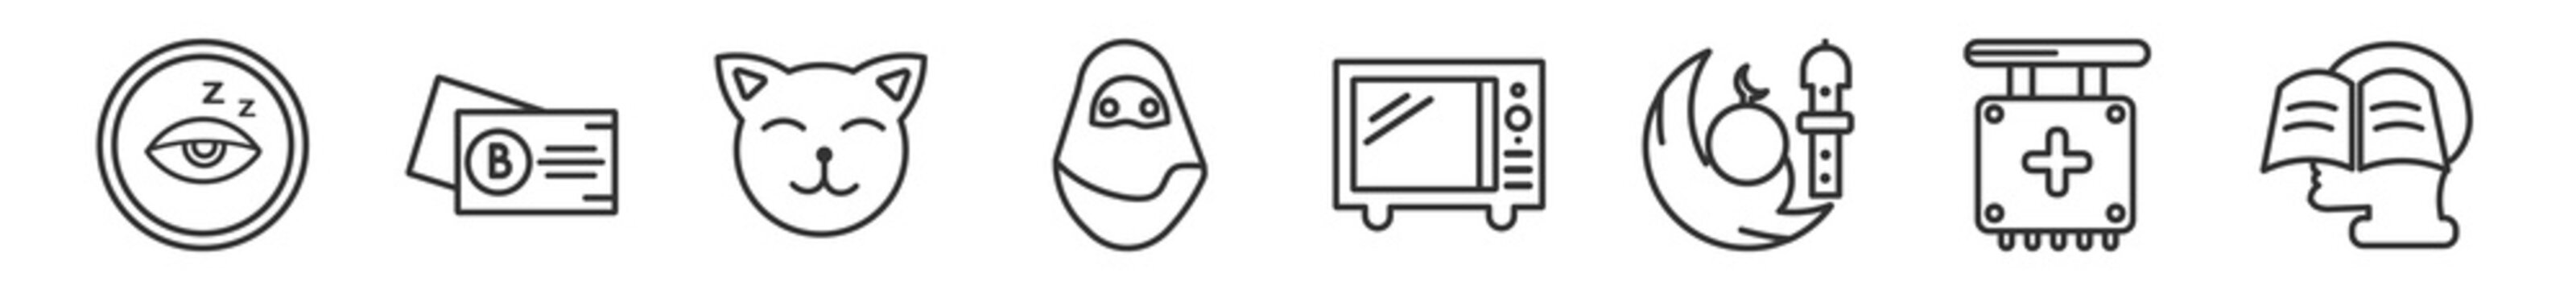 outline set of other line icons. linear vector icons such as sleepy, black abstract business card, japanese cat, arabian woman, microwave, self learning. vector illustration.